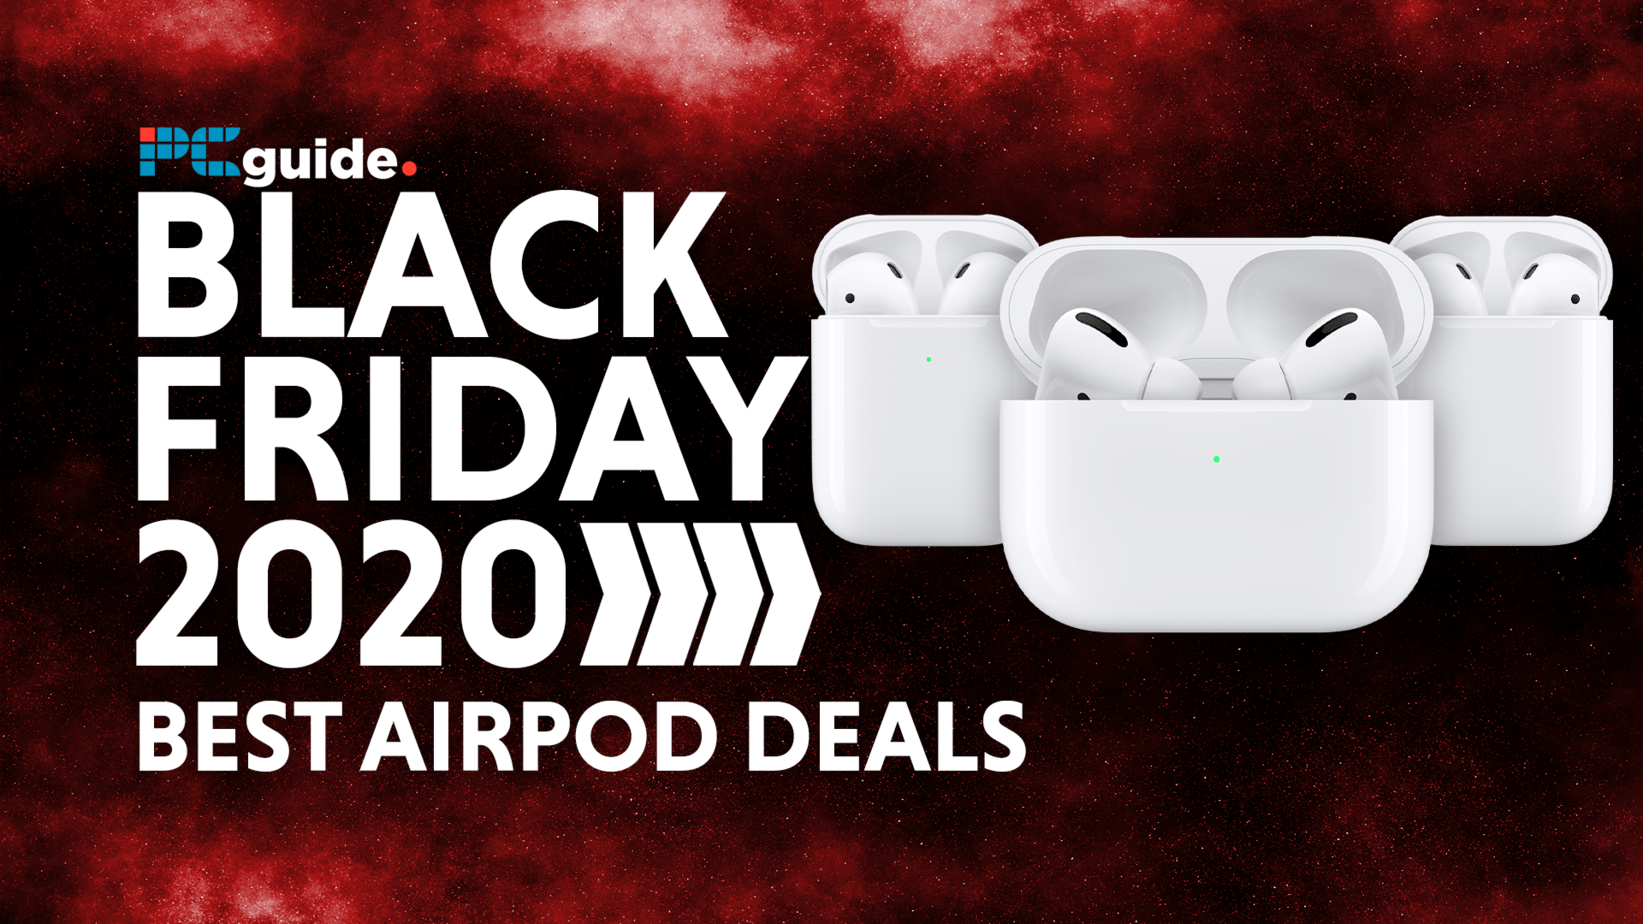 Best Airpods Black Friday Deals In 2020 Pcguide